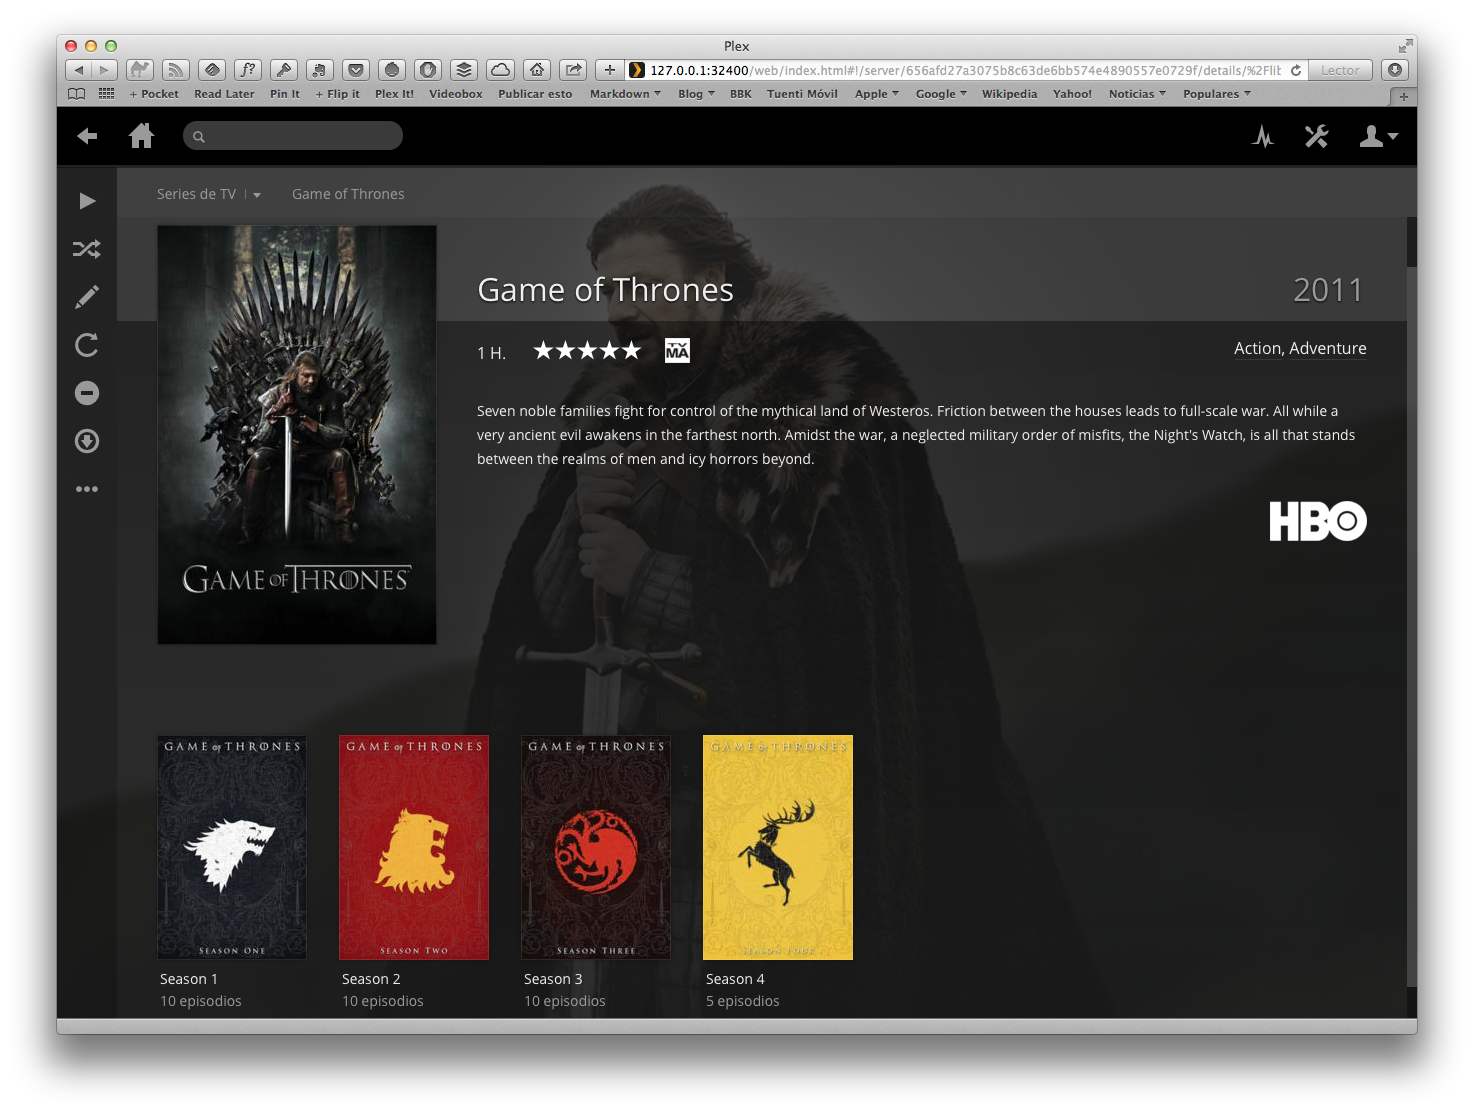 Plex - Series TV - Game of Thrones